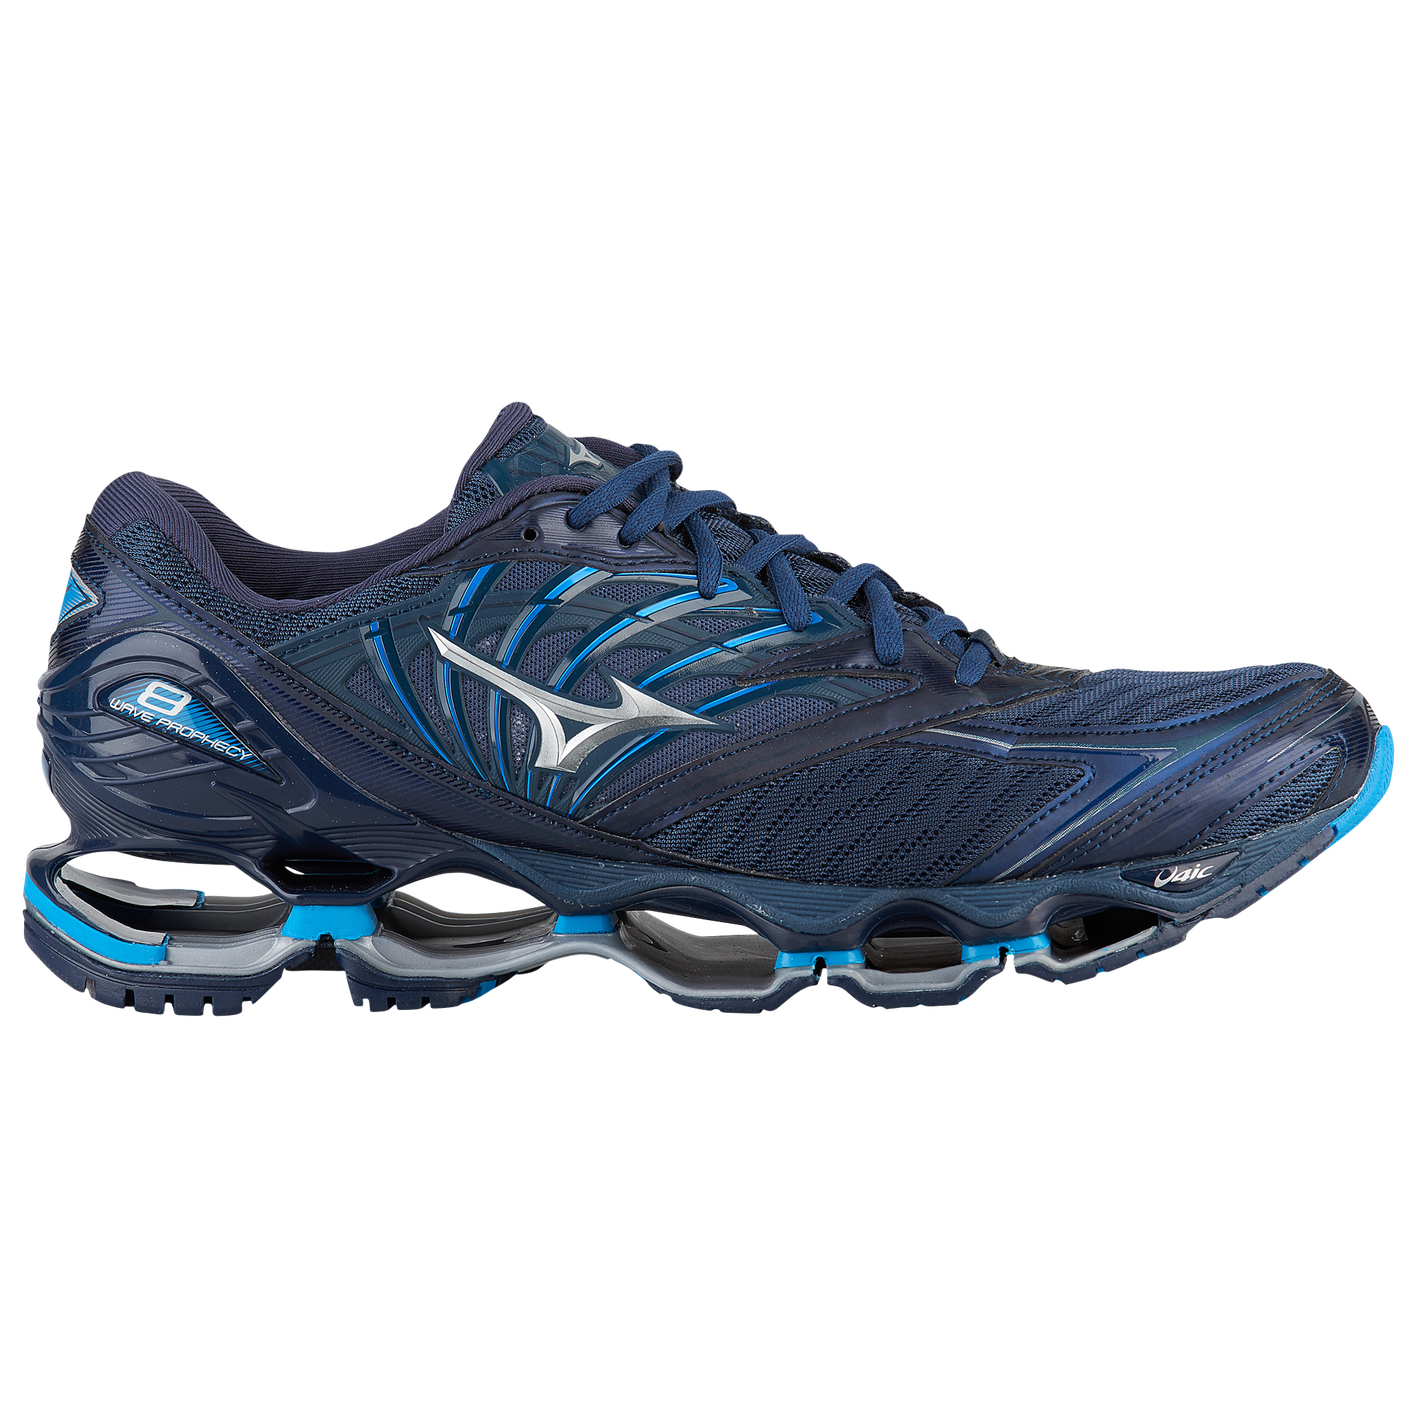 c07ae3549c34 Mizuno Wave Prophecy 8 - Men's - Running - Shoes - Blue Wing Tail/Silver